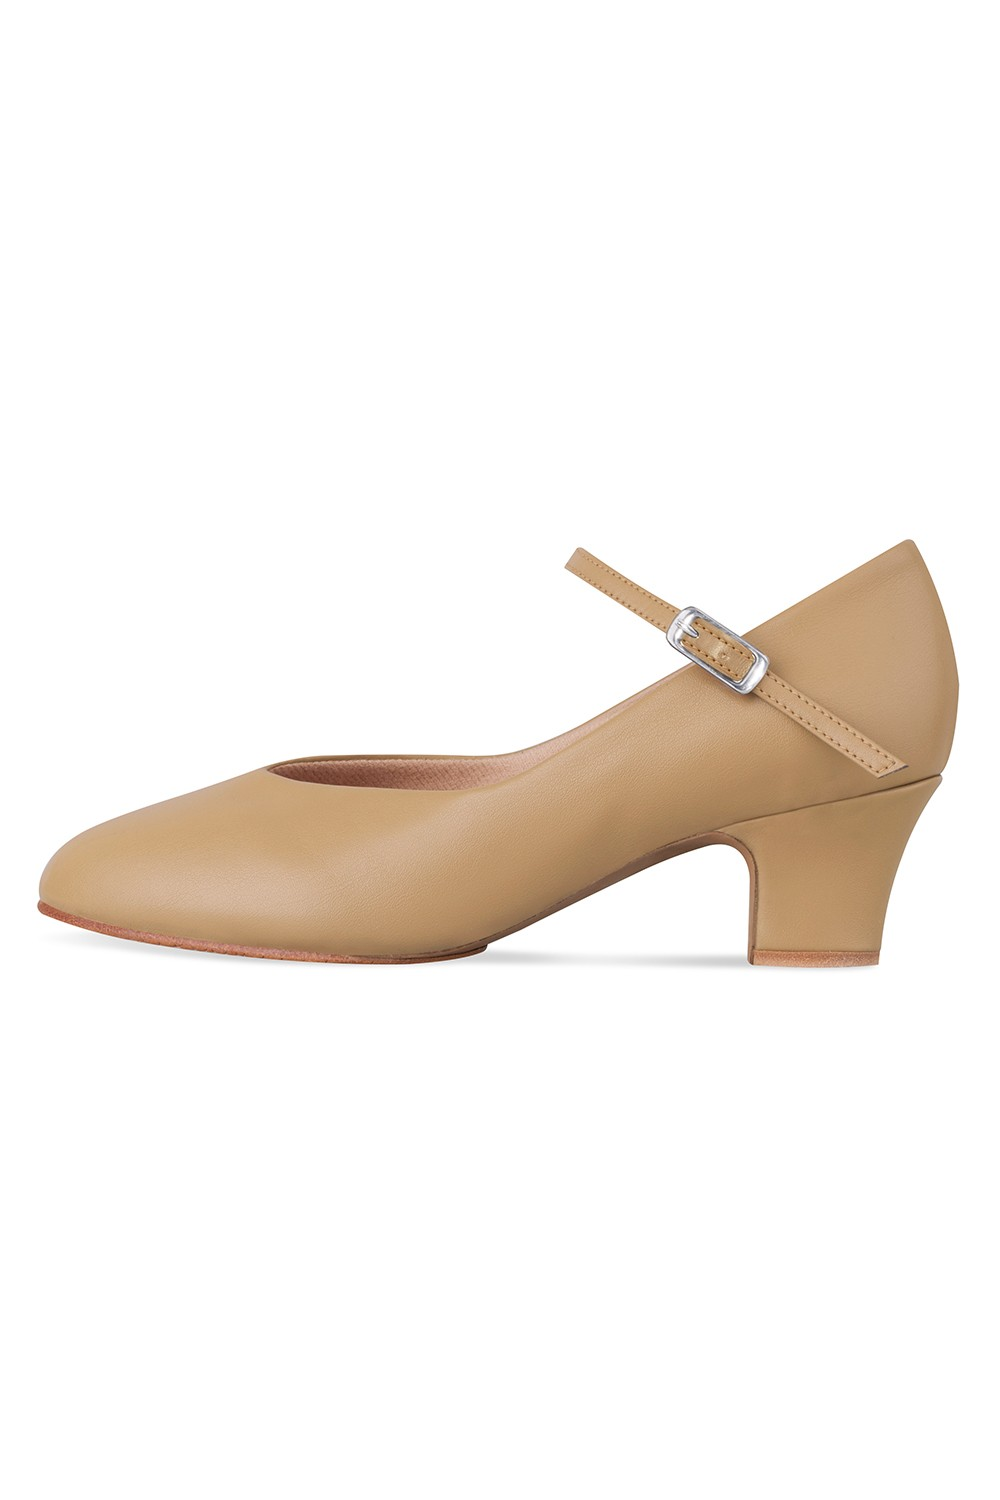 Broadway-lo Women's Character Shoes